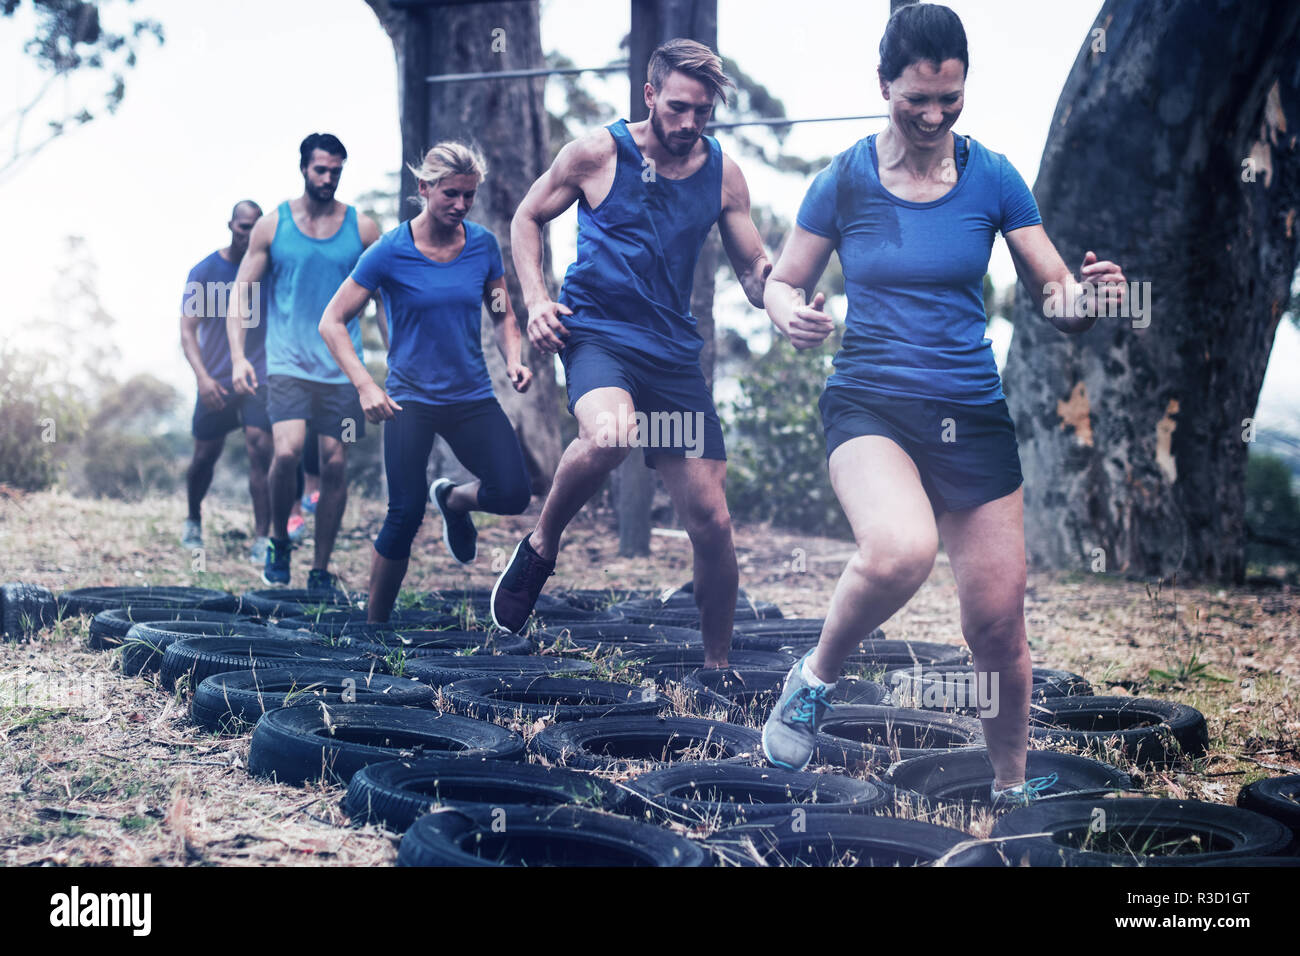 People receiving tire obstacle course training Stock Photo